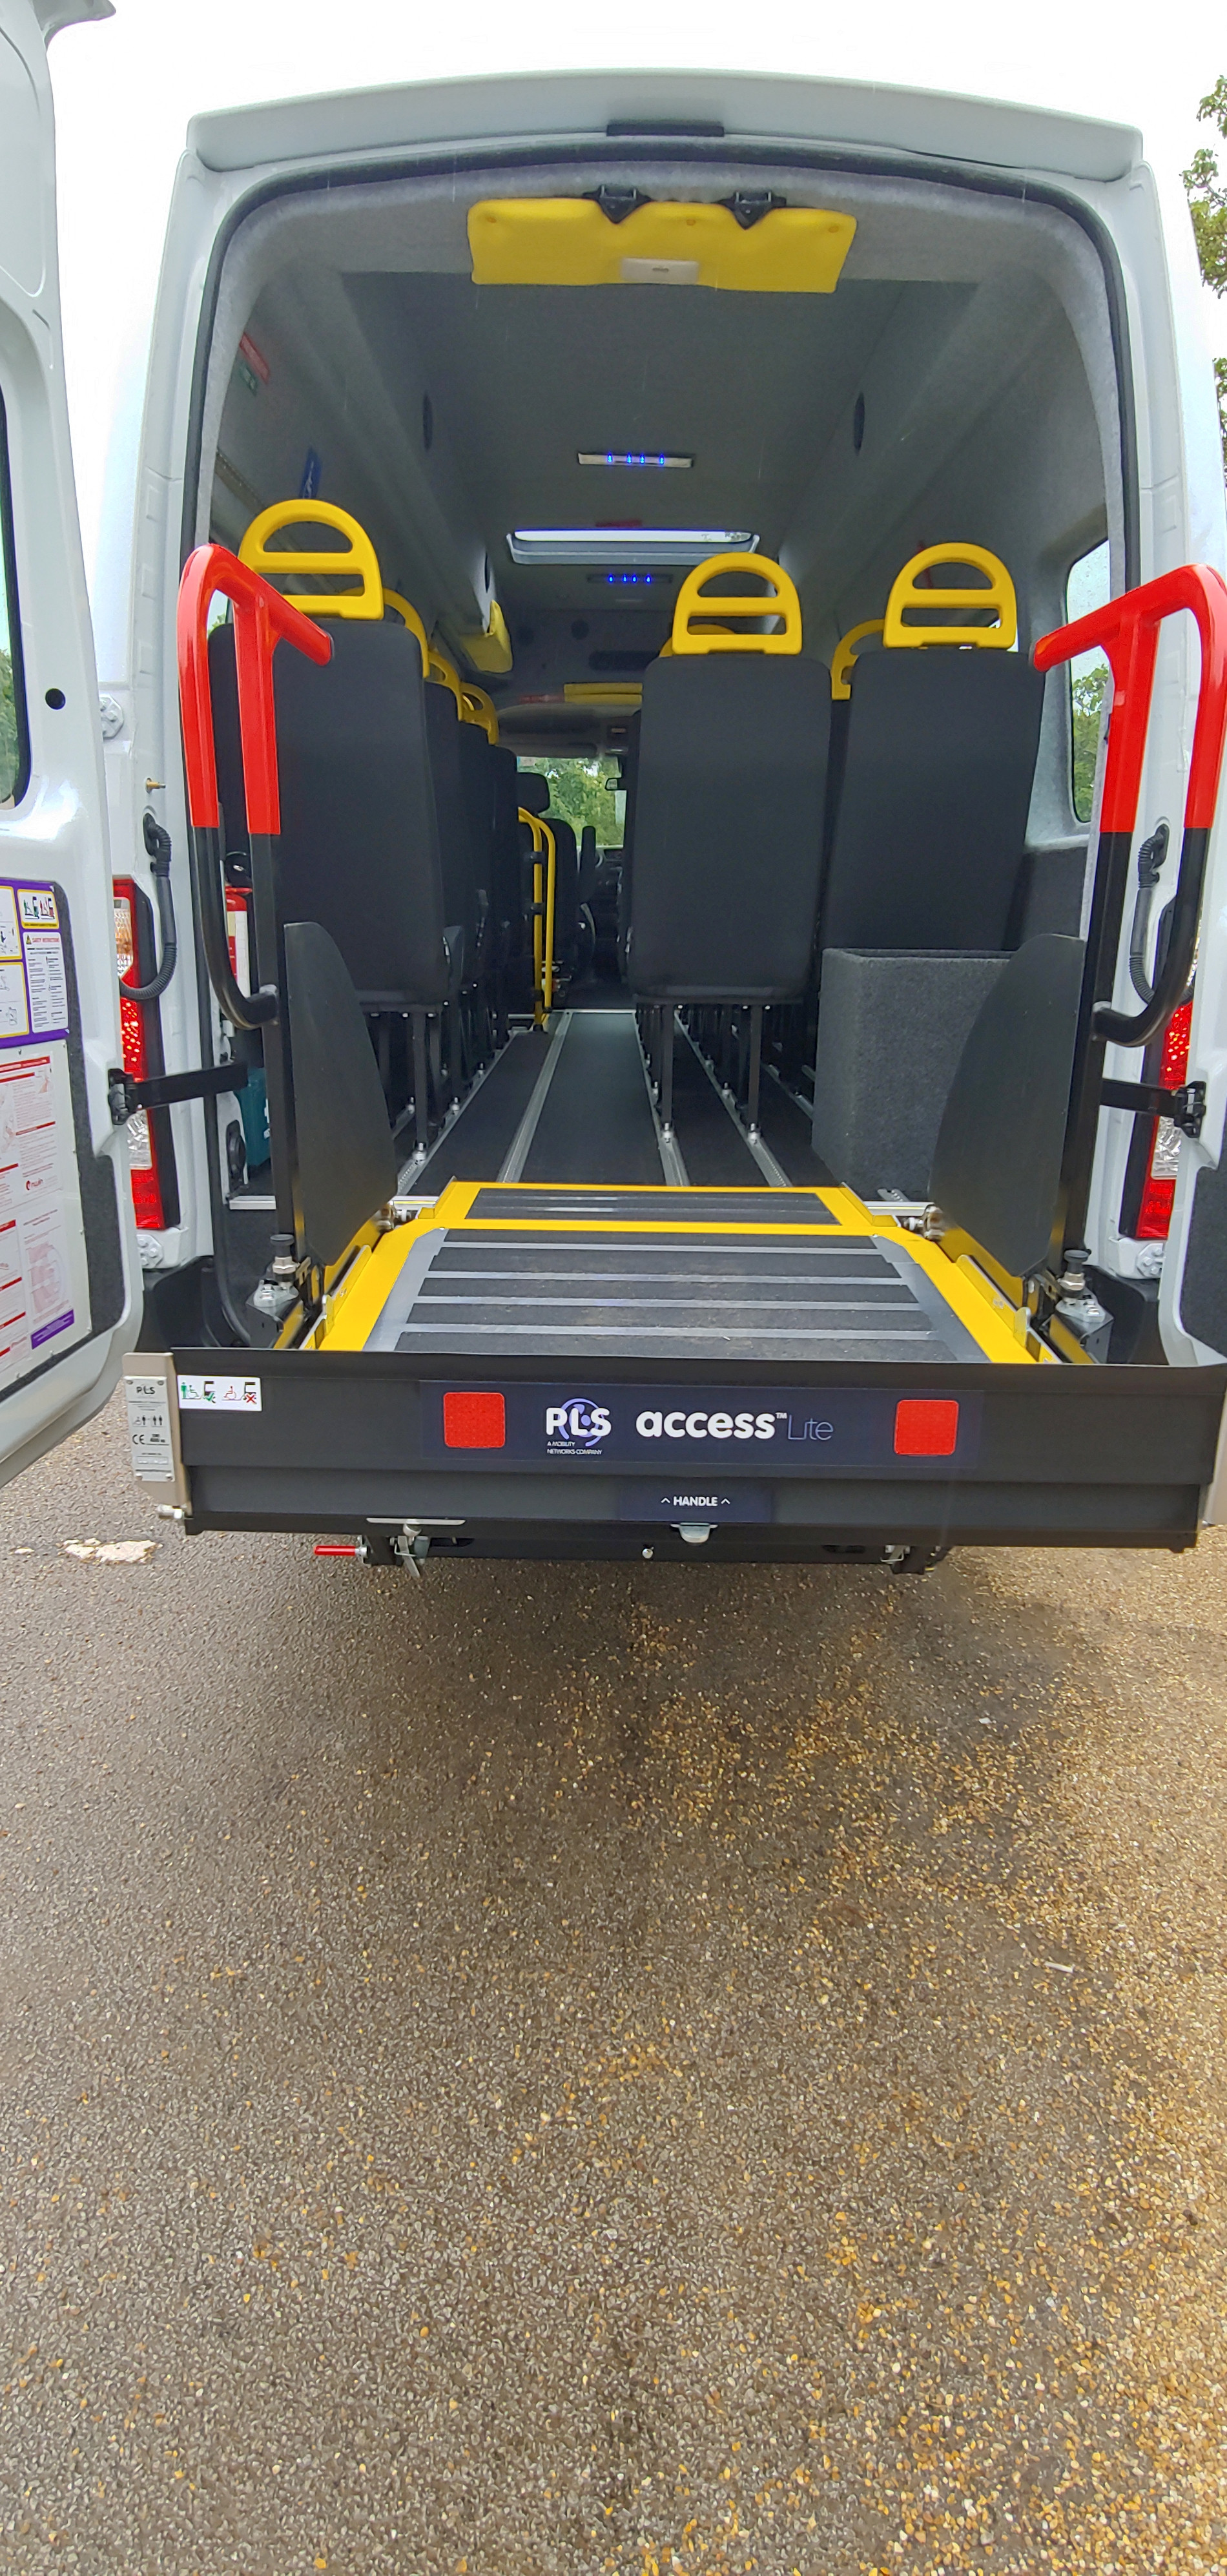 PLS Tail lift on Warnerbus conversion